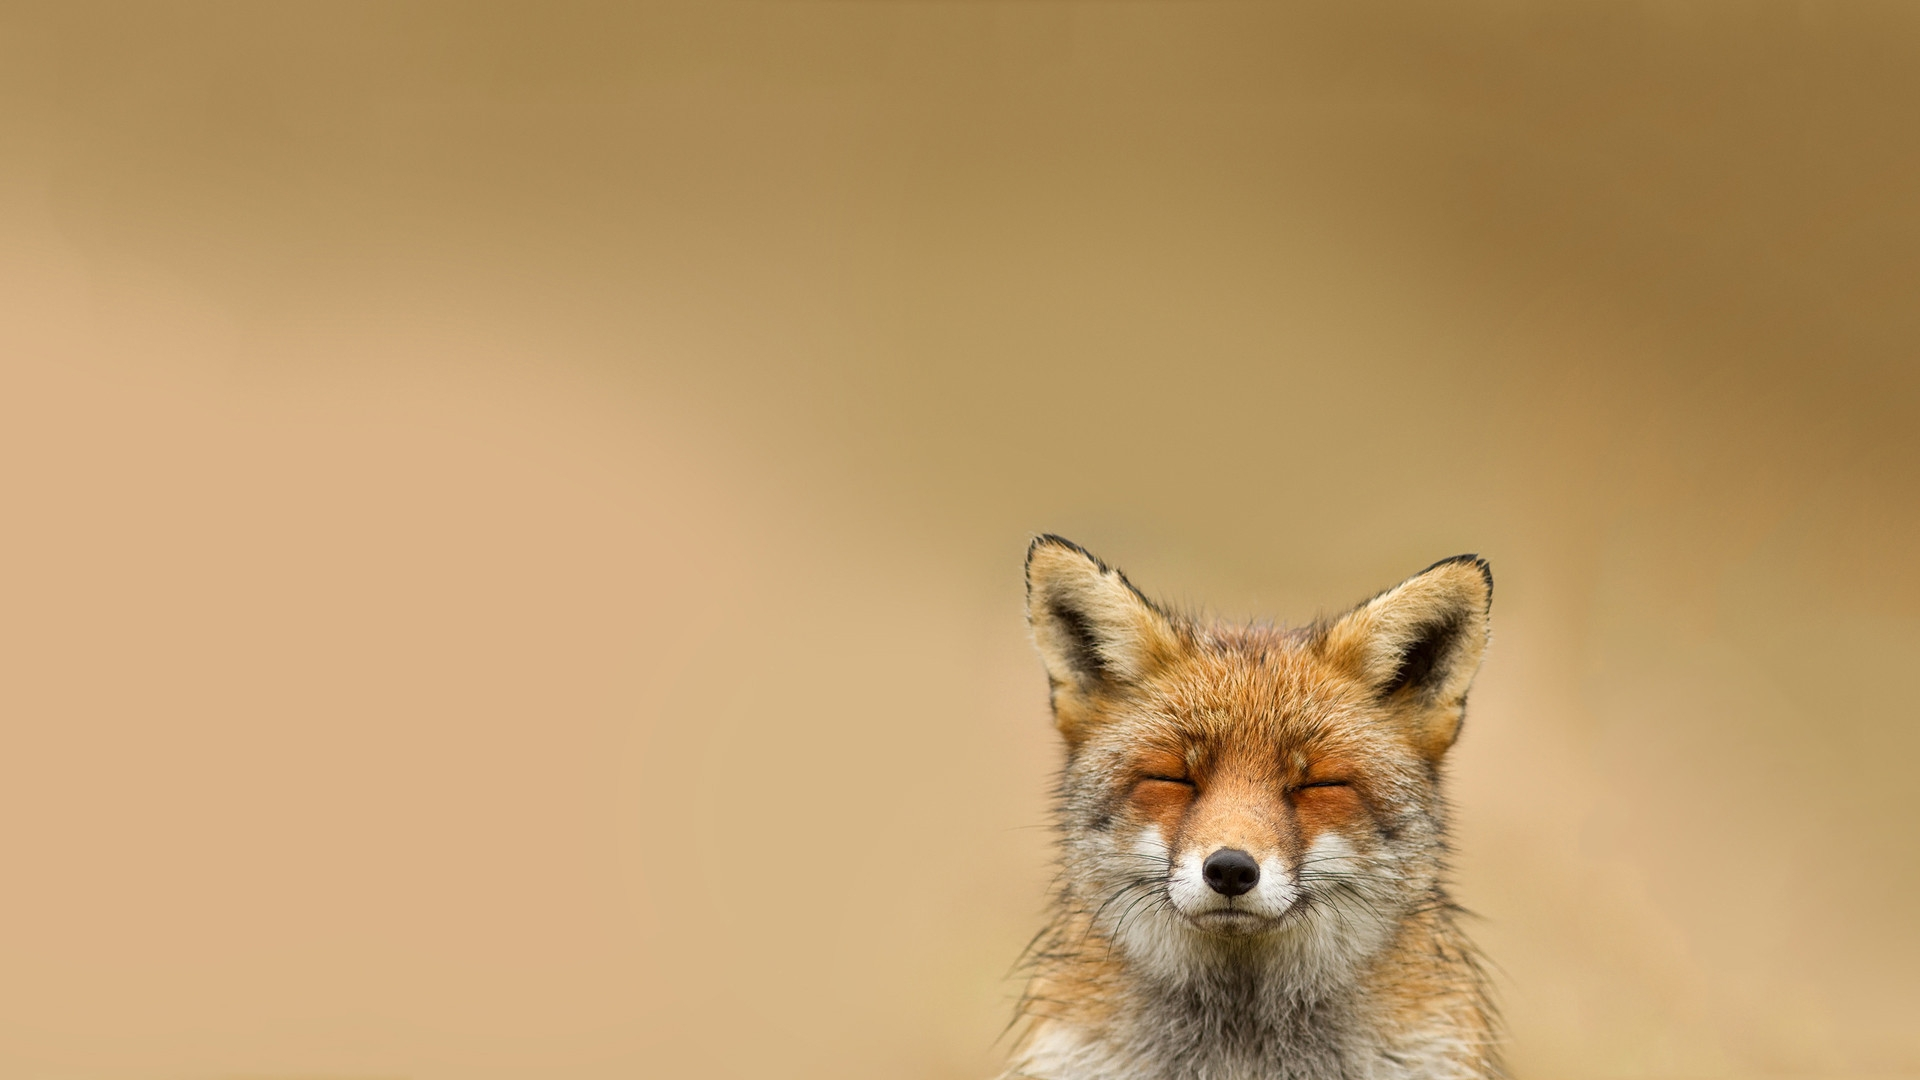 36643 download wallpaper Animals, Fox screensavers and pictures for free